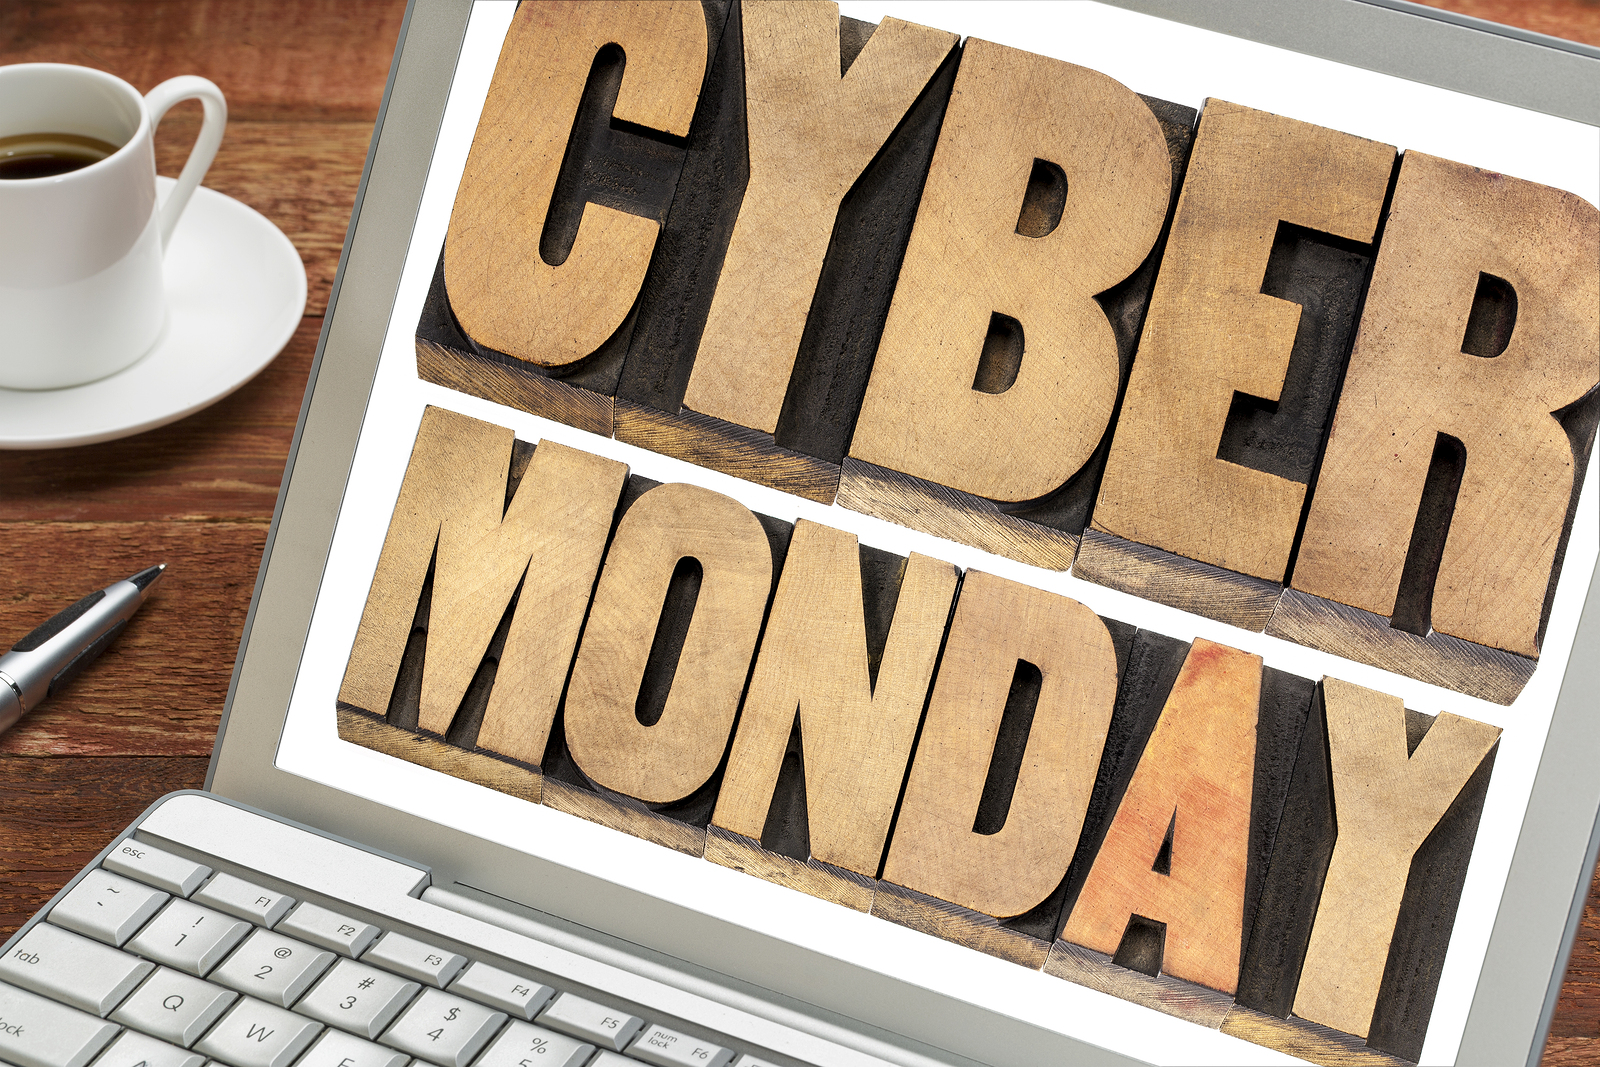 Cyber Monday - online shopping